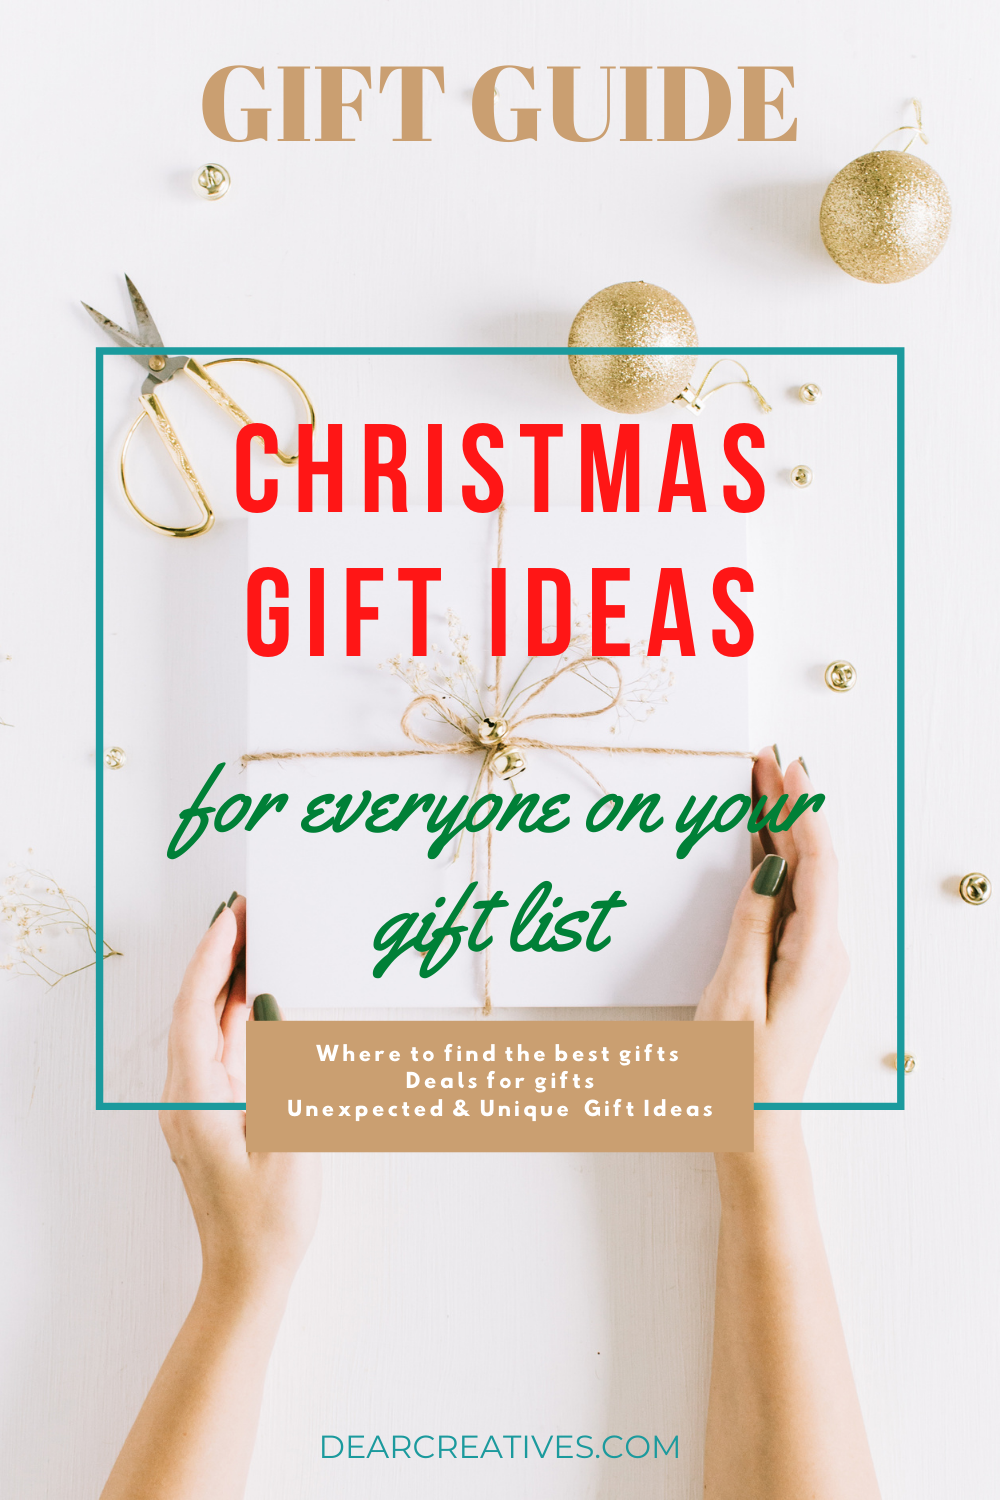 Best Gifts For Everyone On Your List!